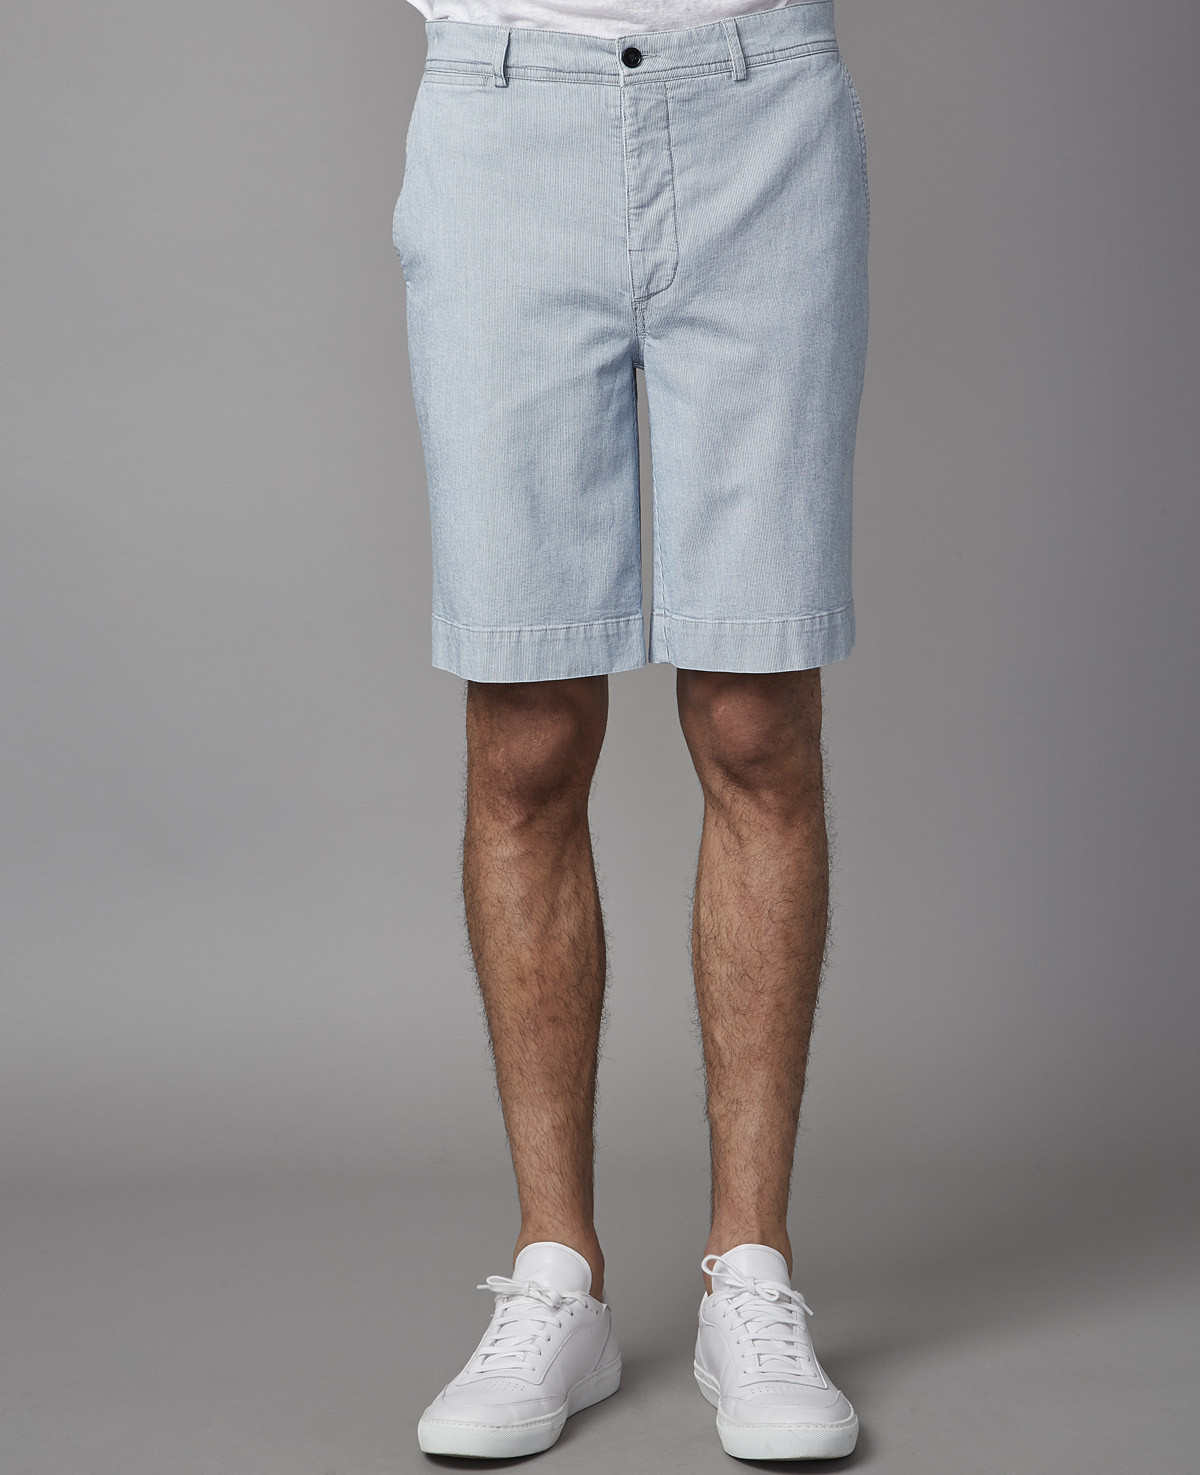 Short Sailor : agrandir l'image